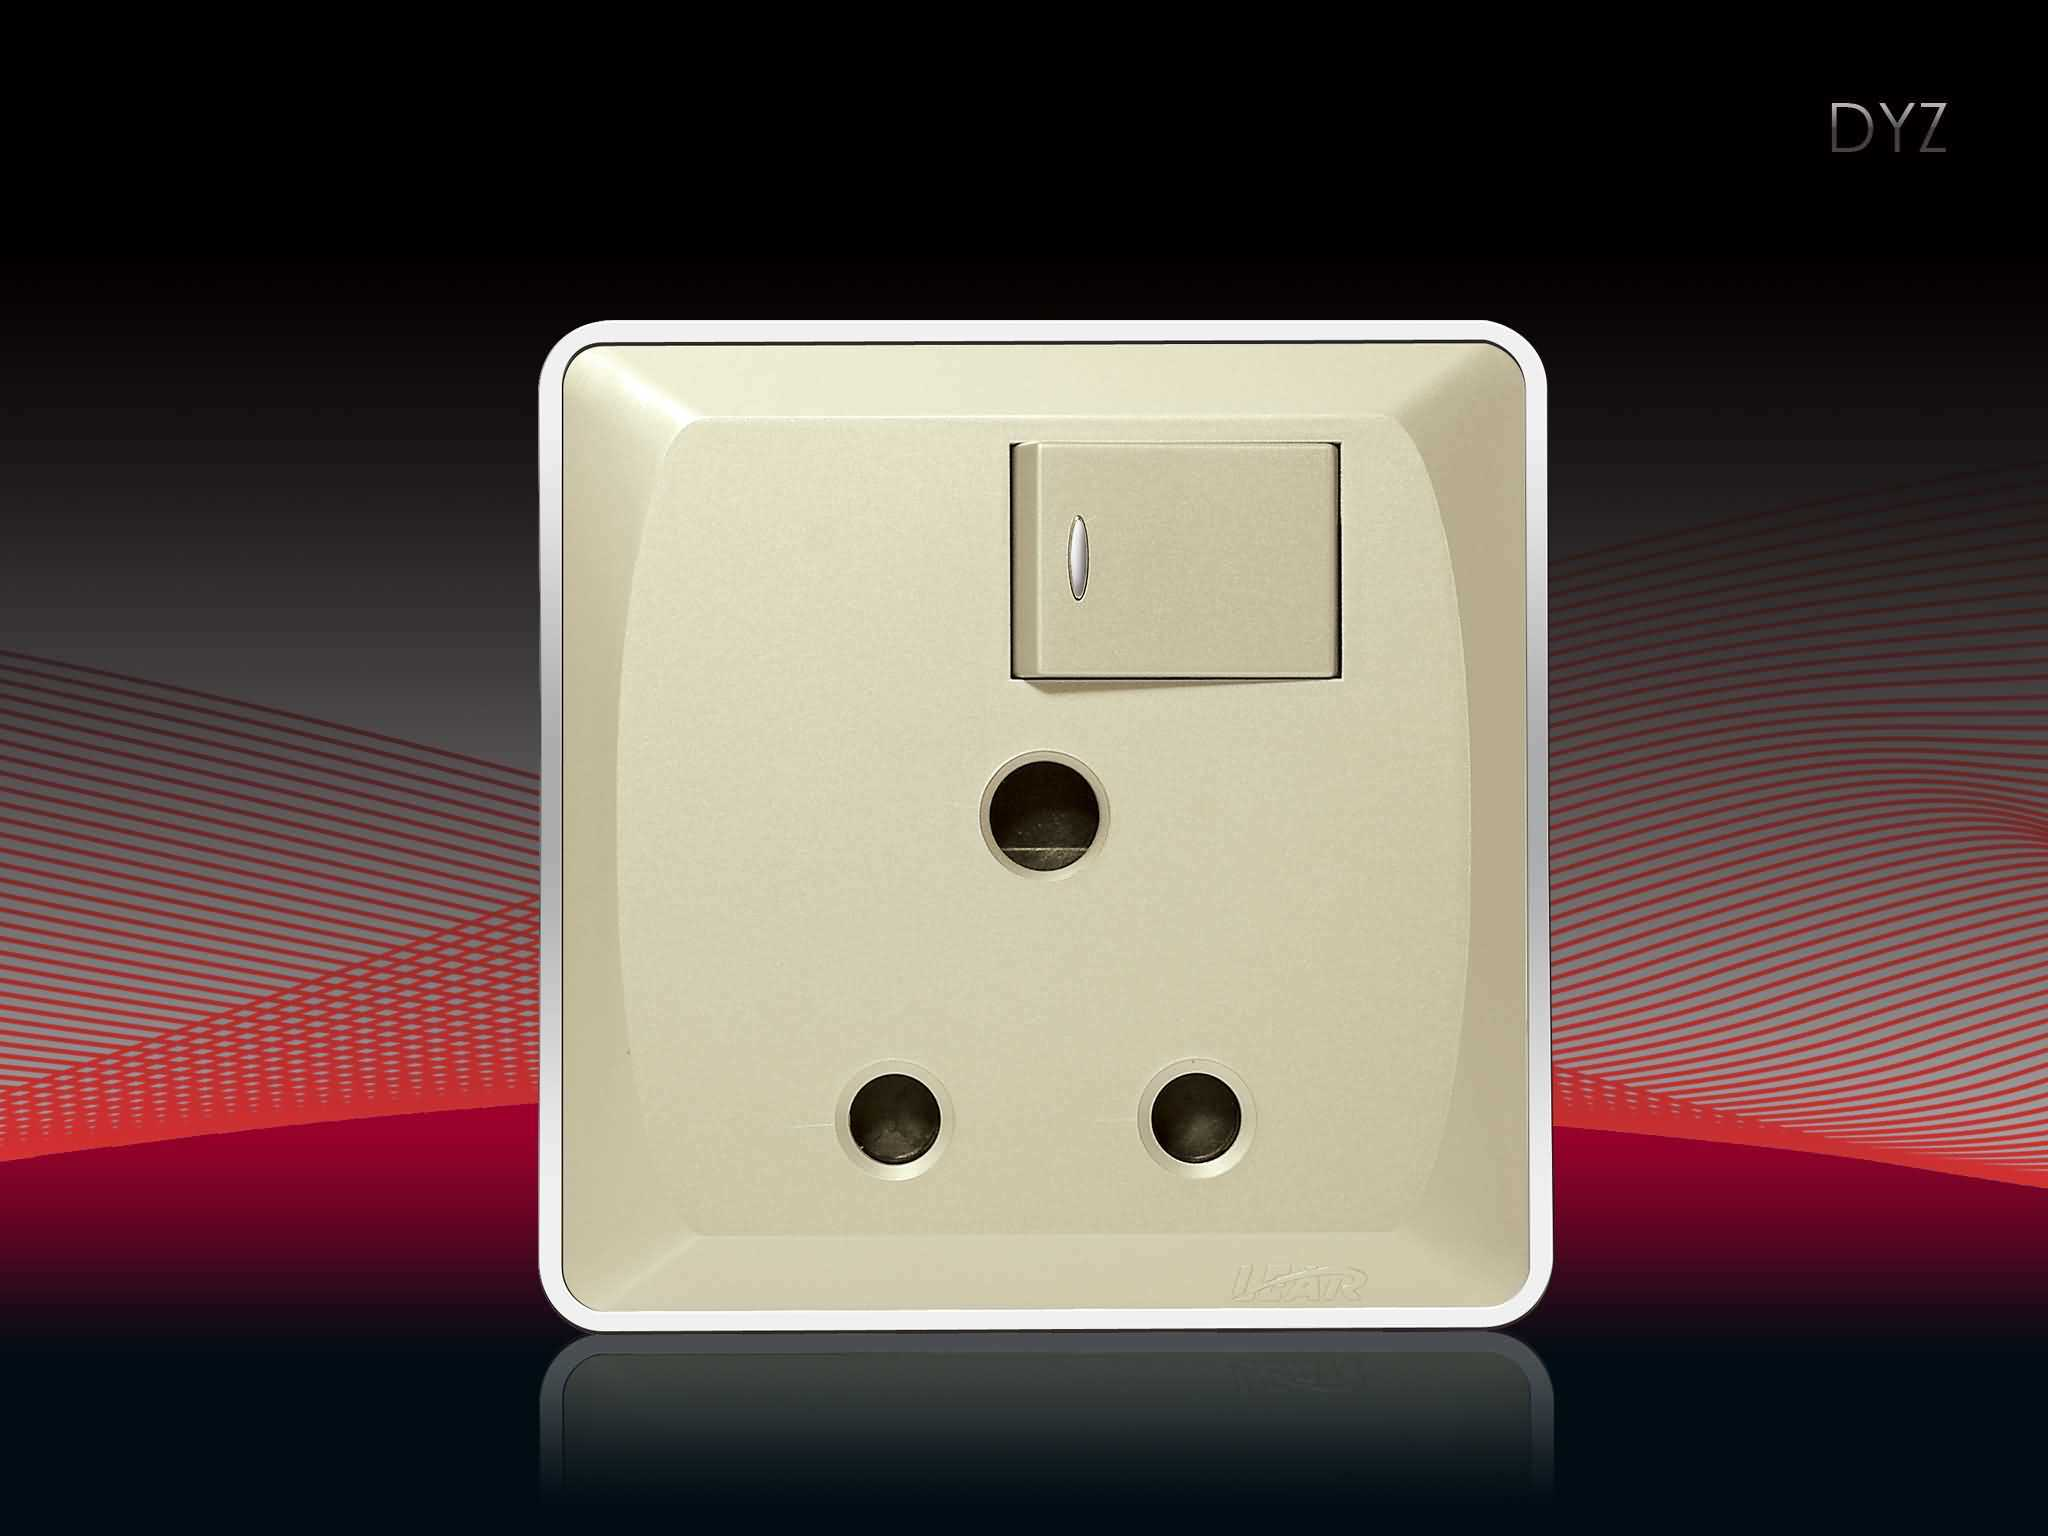 Bs Switch and Socket (V6-3D, DYZ-15)